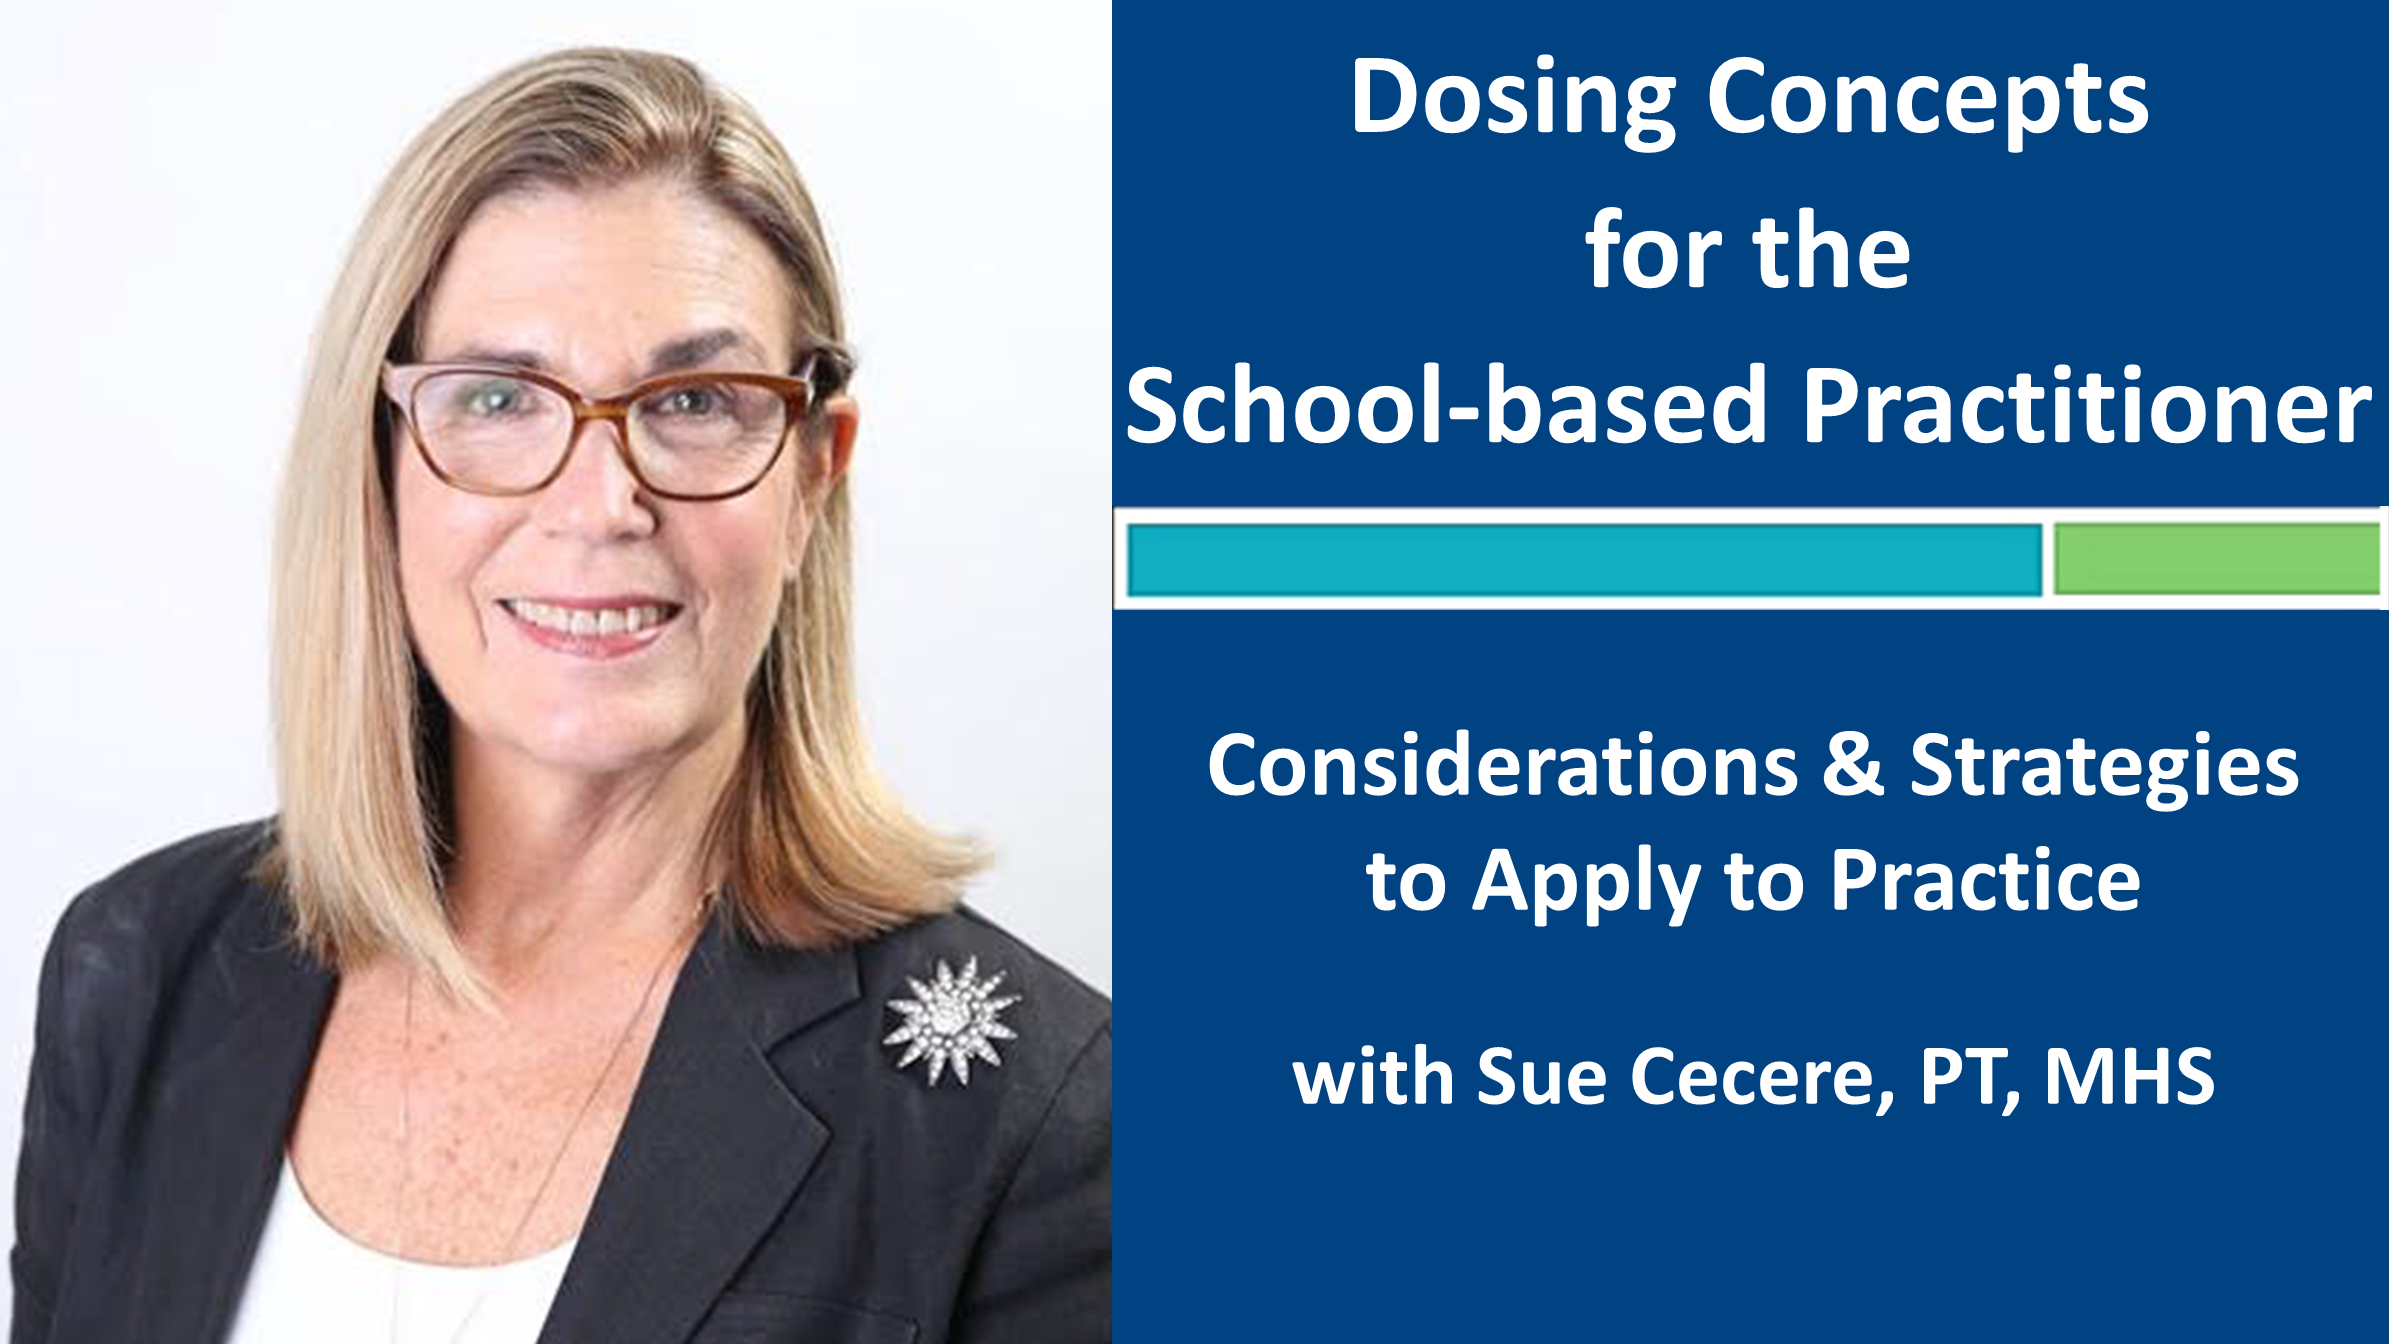 Early Bird! Register by August 14 and get free access to Dosing Concepts in School-based Practice withe Sue Cecere, PT, MHS